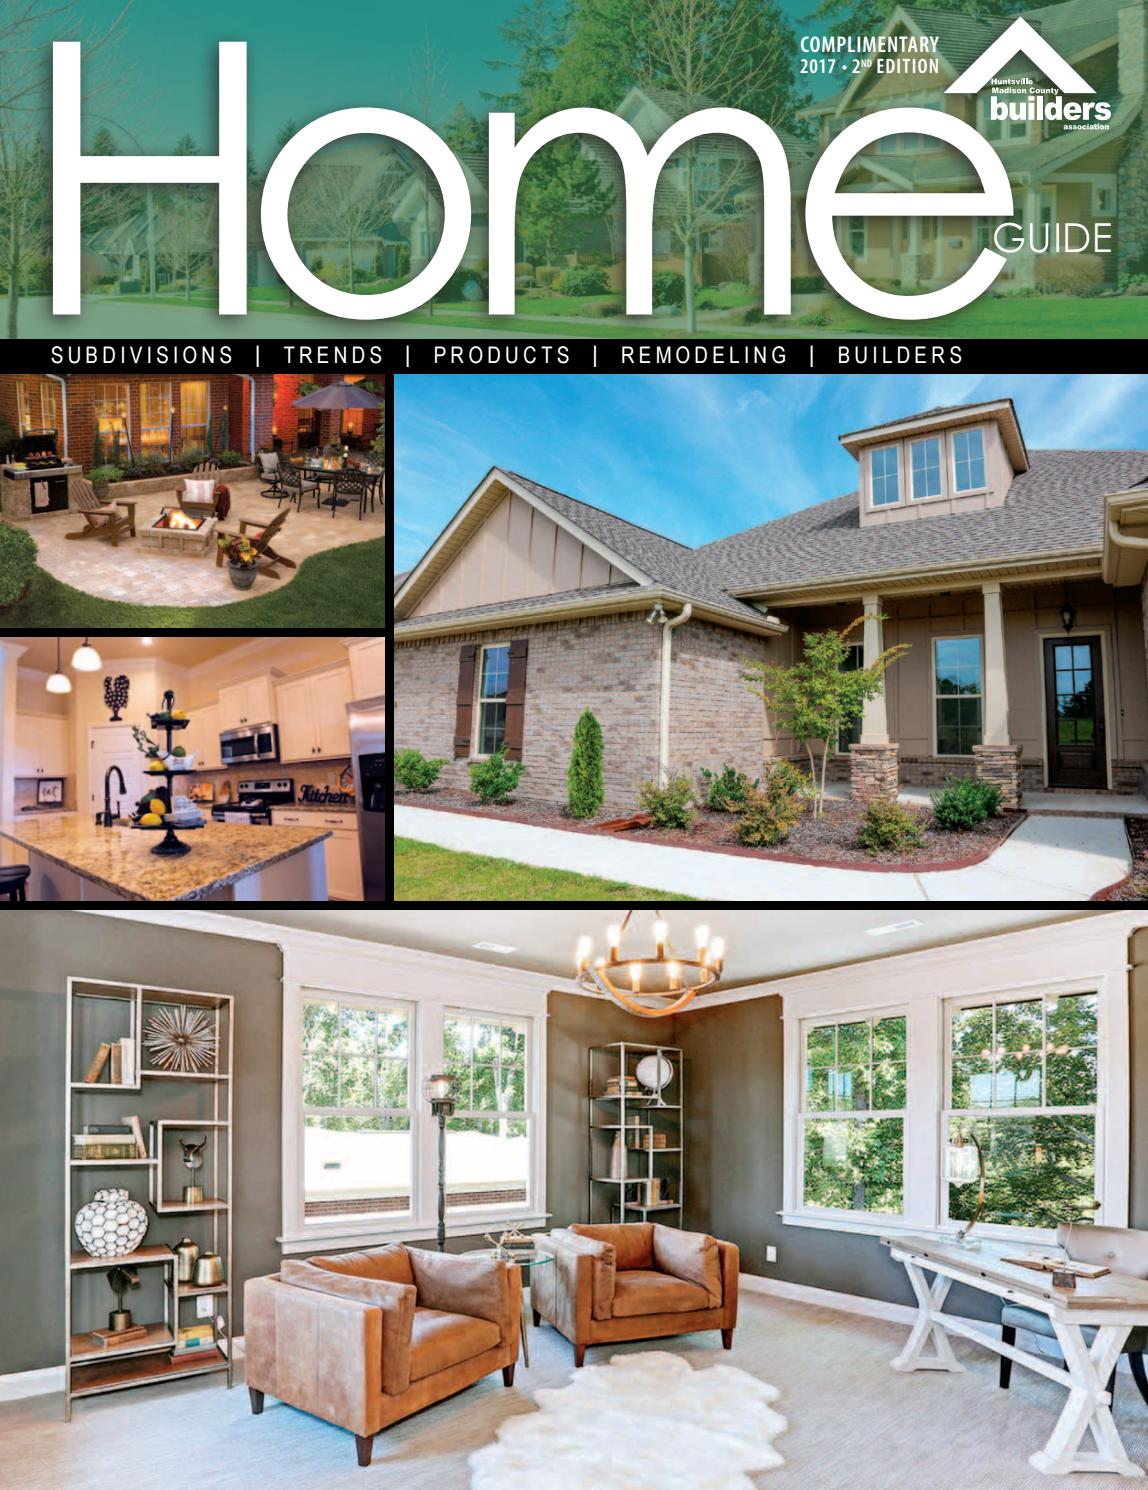 2017 Hmcba Home Guide By Huntsville Madison County